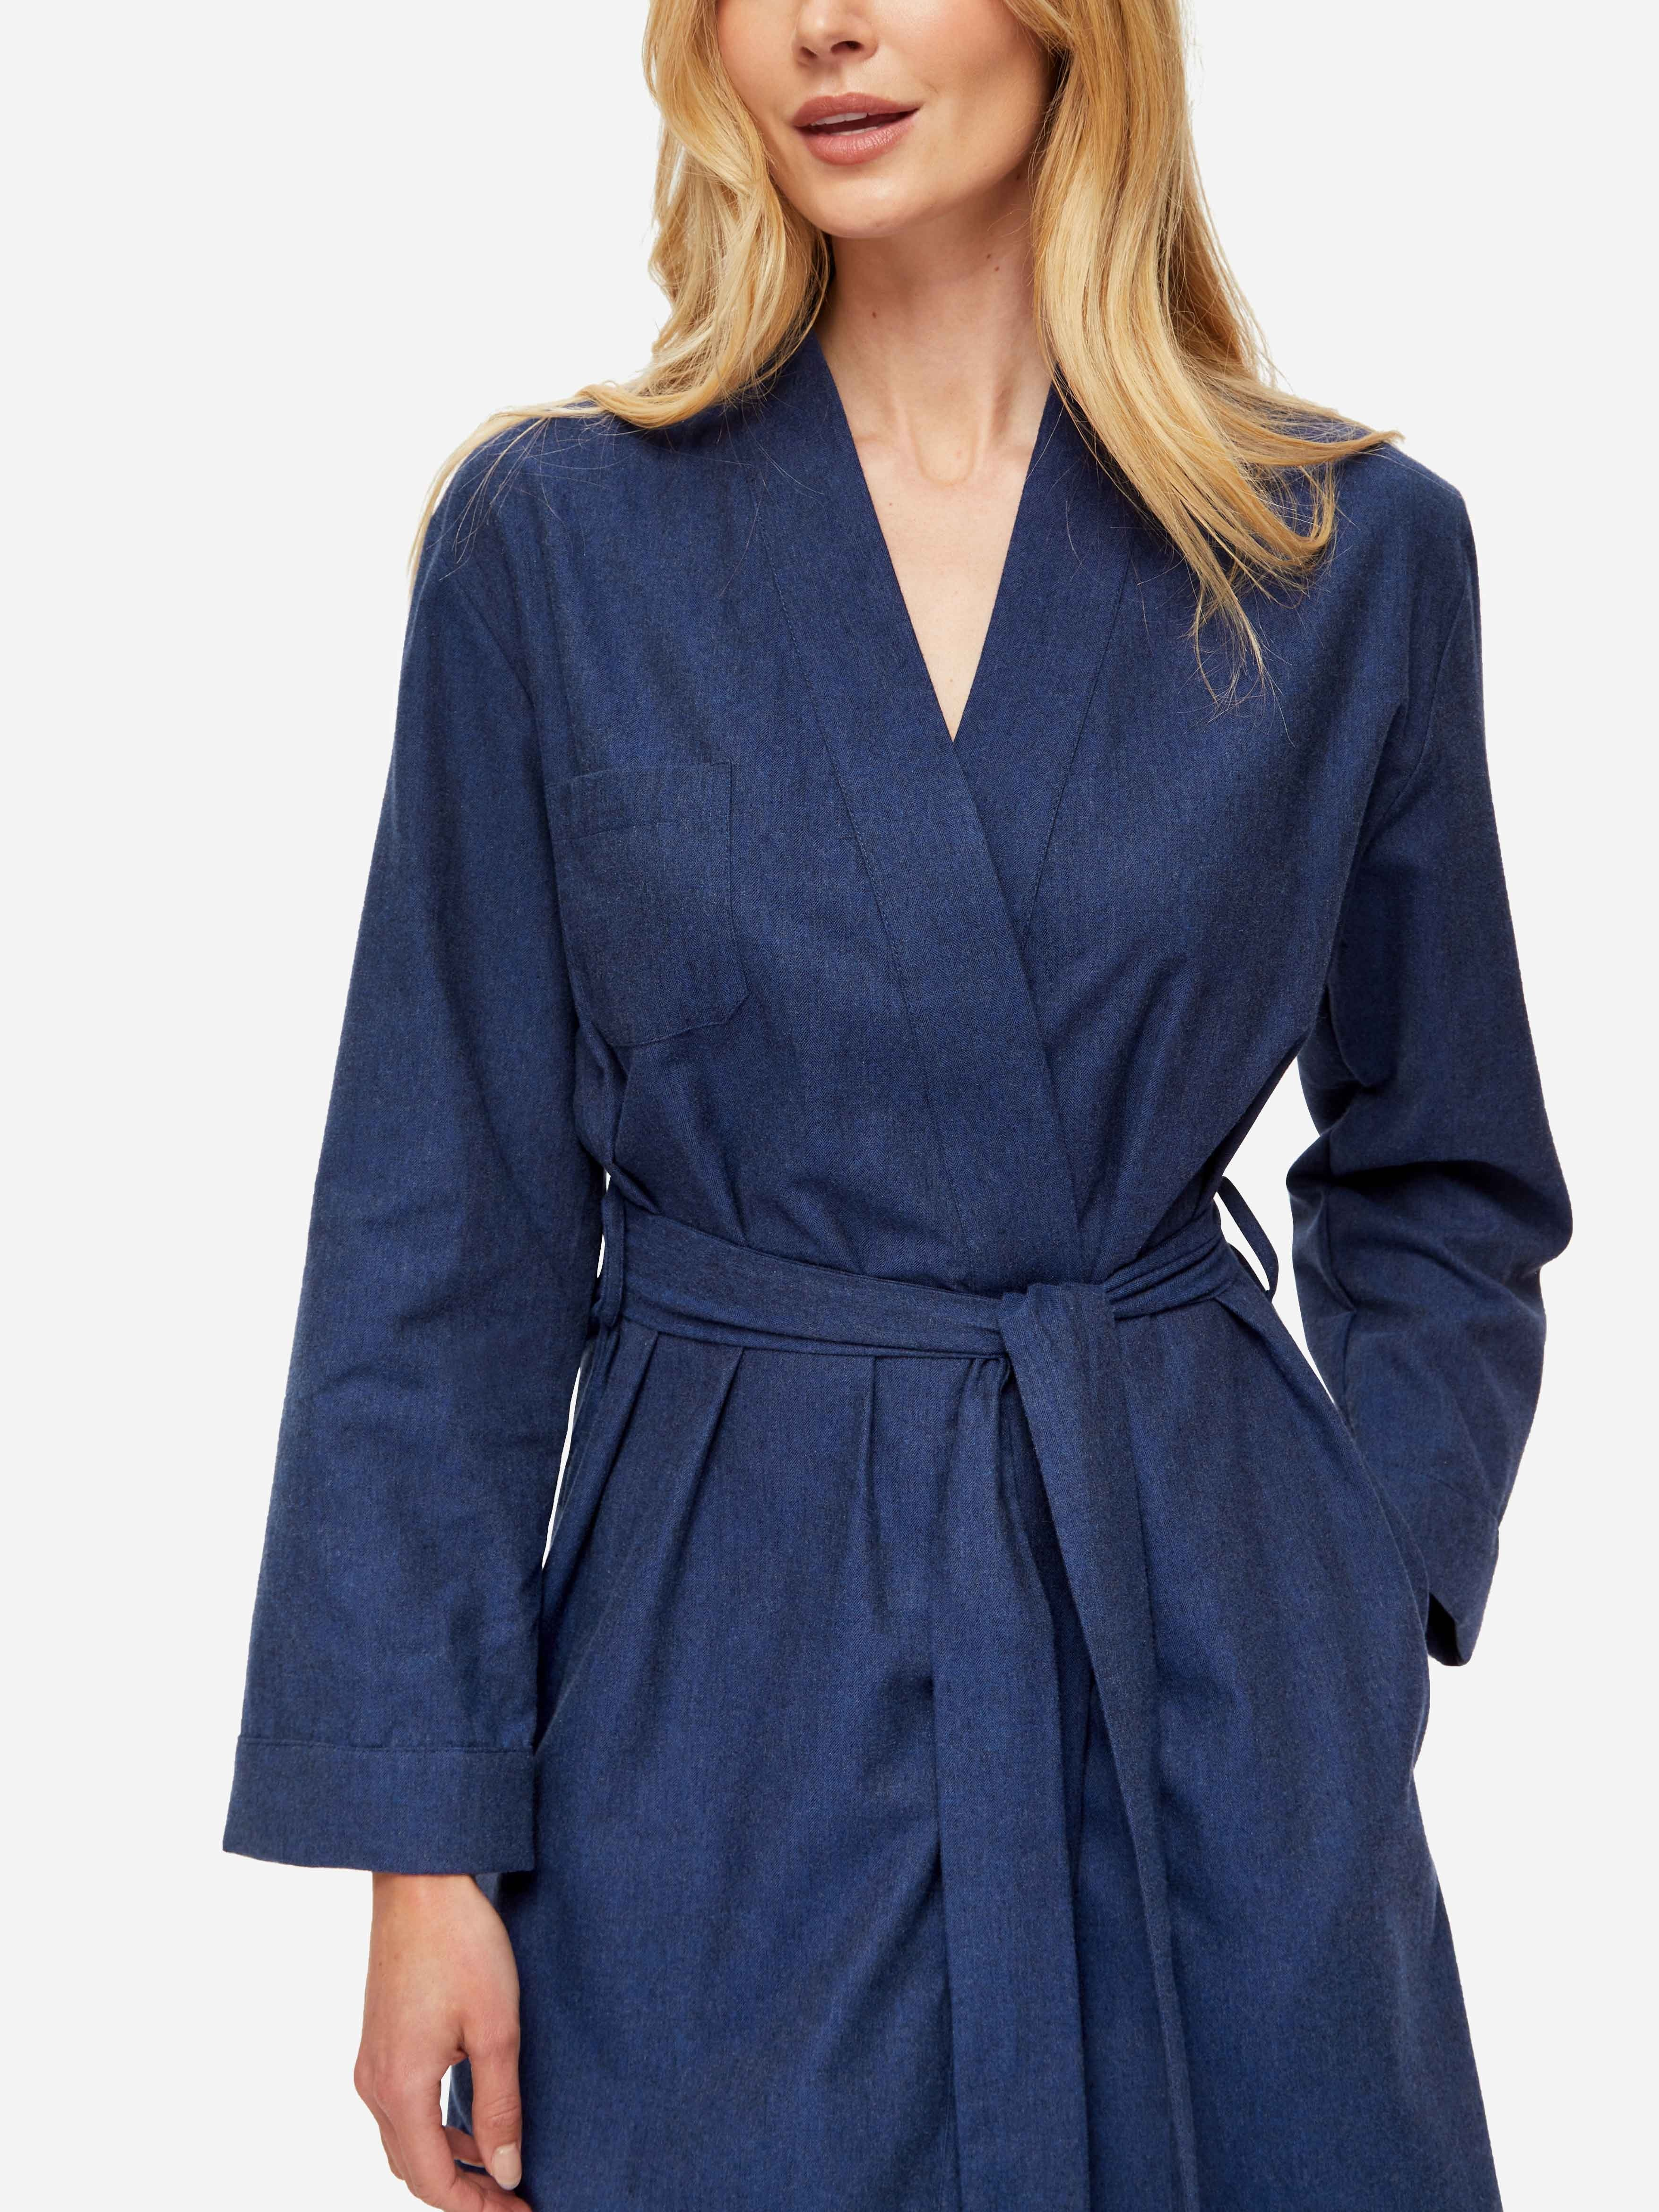 Women's Mid Dressing Gown Balmoral 3 Brushed Cotton Navy